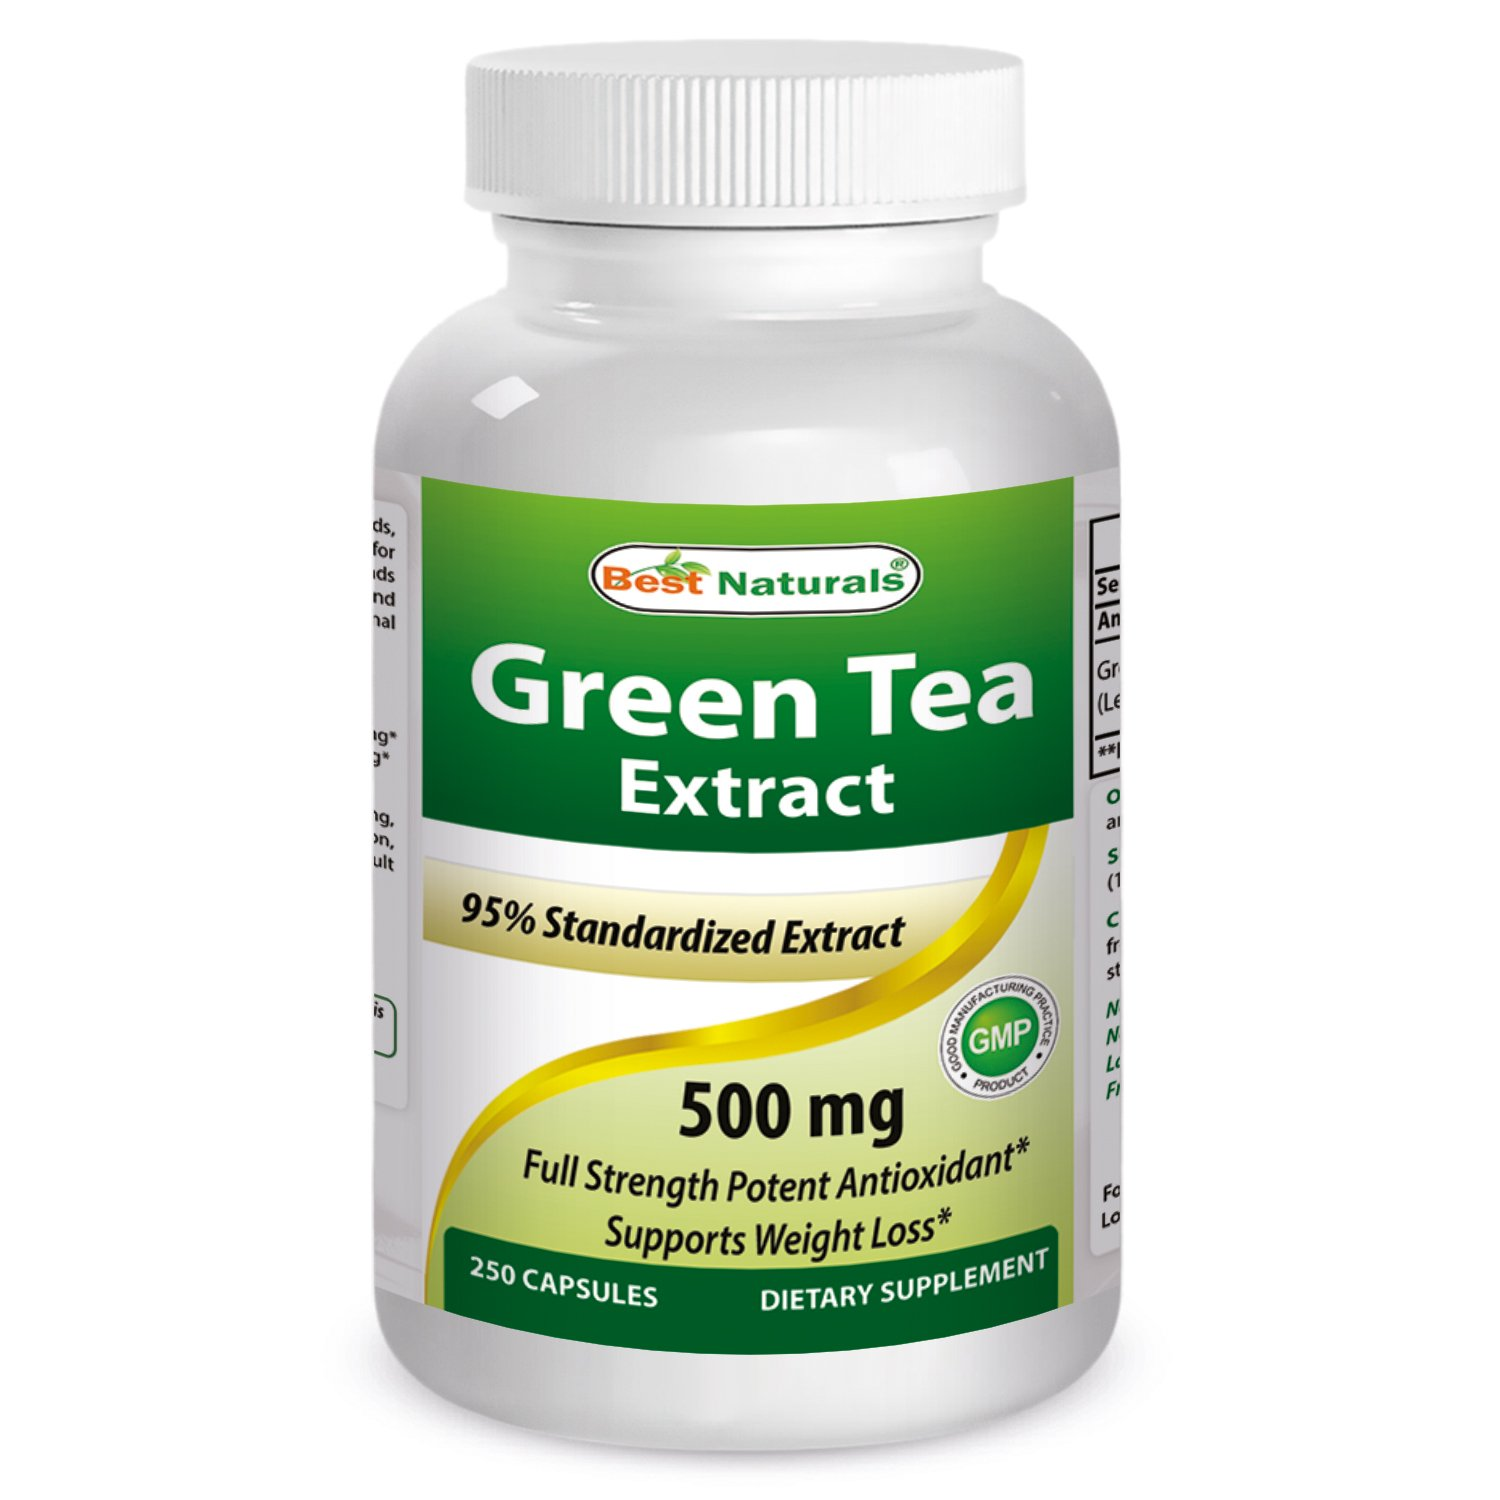 Best Naturals Green Tea Extract 500 mg 250 Capsules by Best Naturals